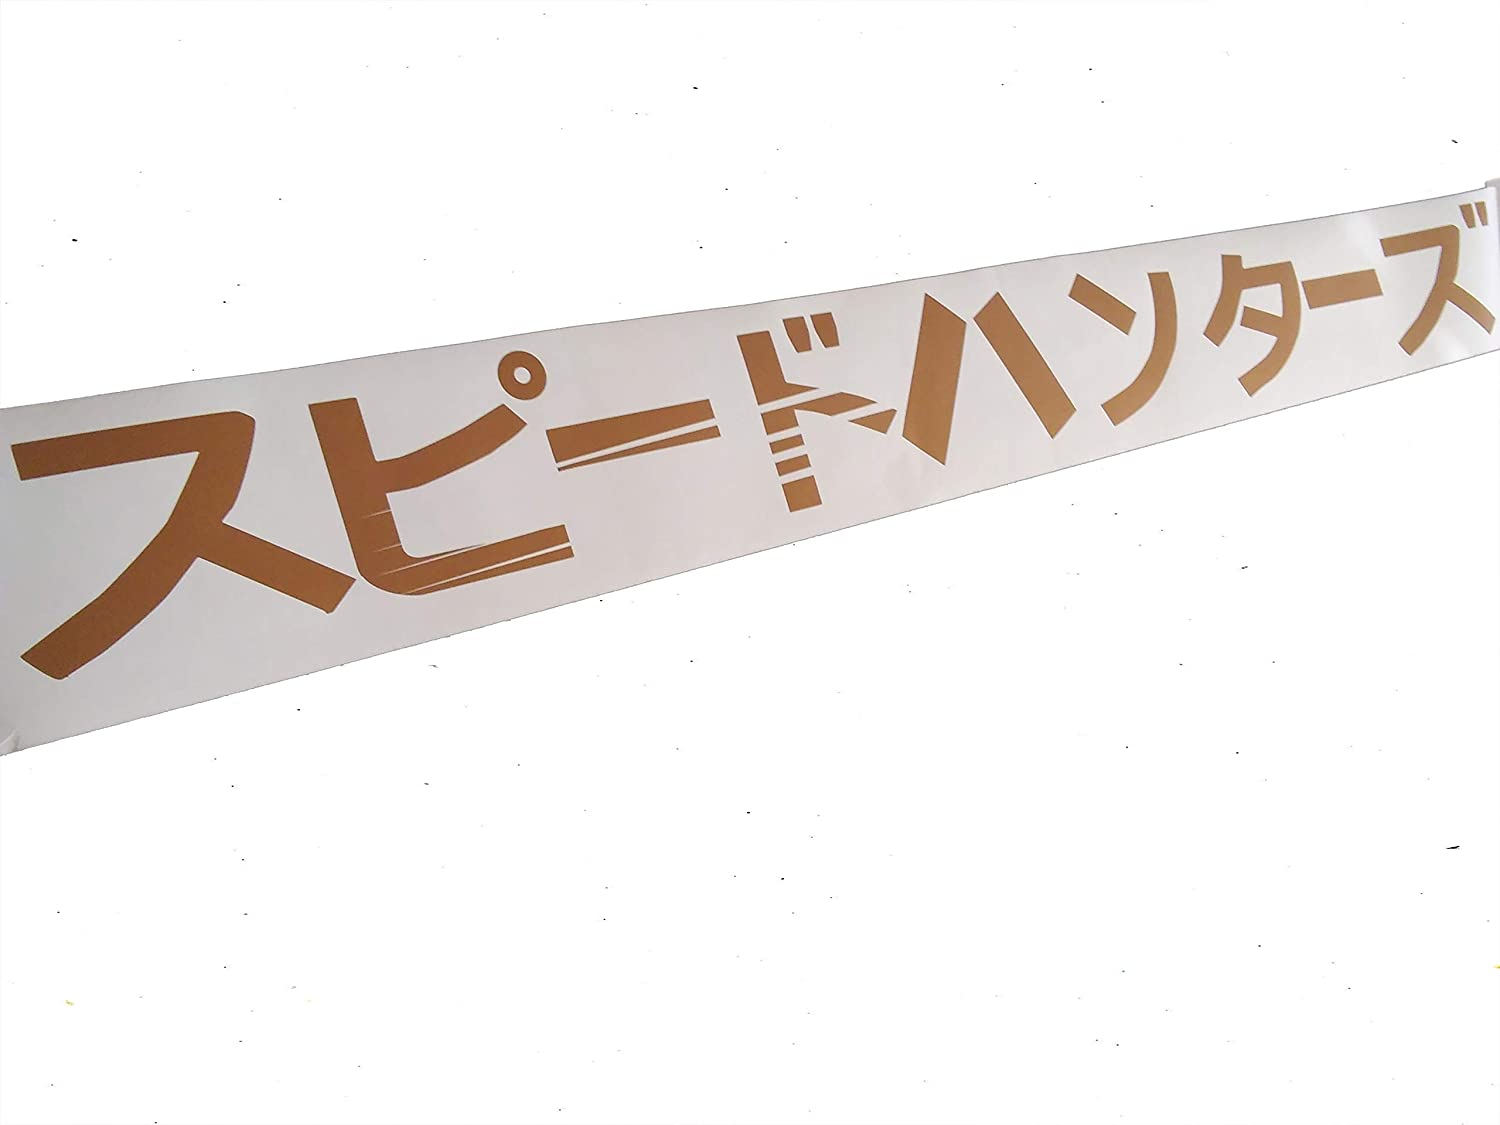 Gy AKINA SPEED STARS Windshield Decal Car Sticker Banner Graphics Low Stance